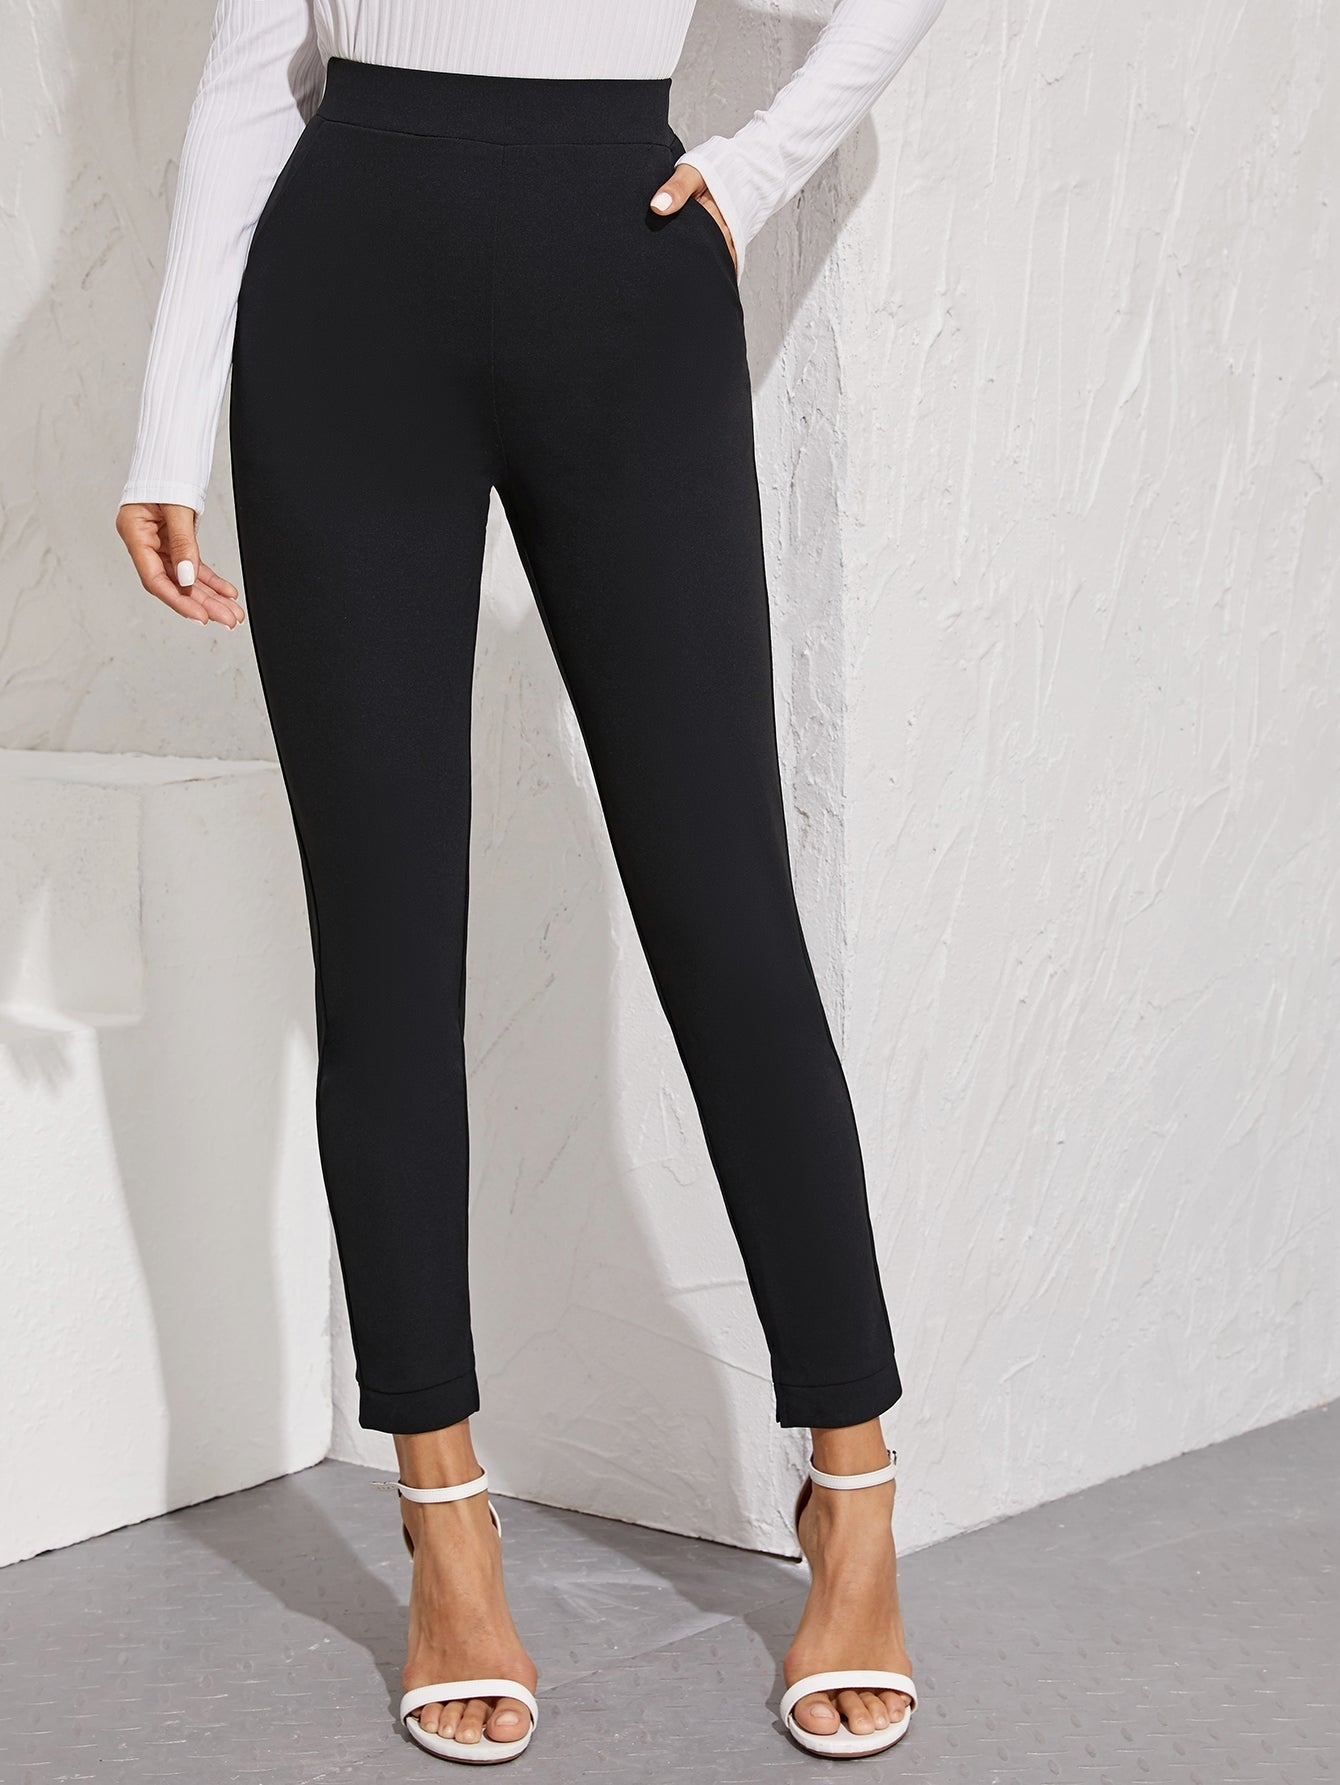 Slant Pocket Detail Slit Hem Skinny Pants